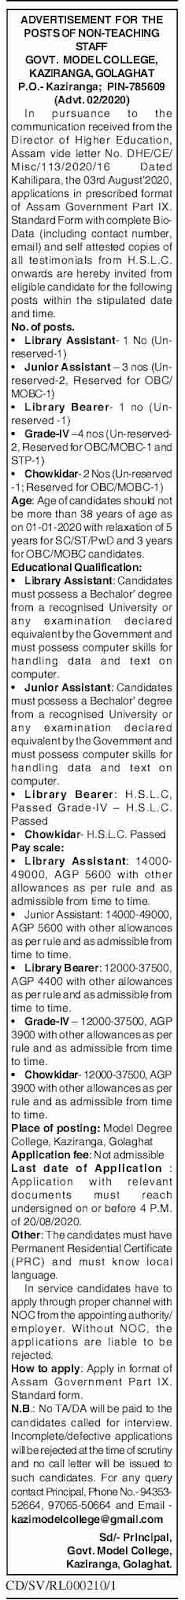 Kaziranga-Model-College-Jobs